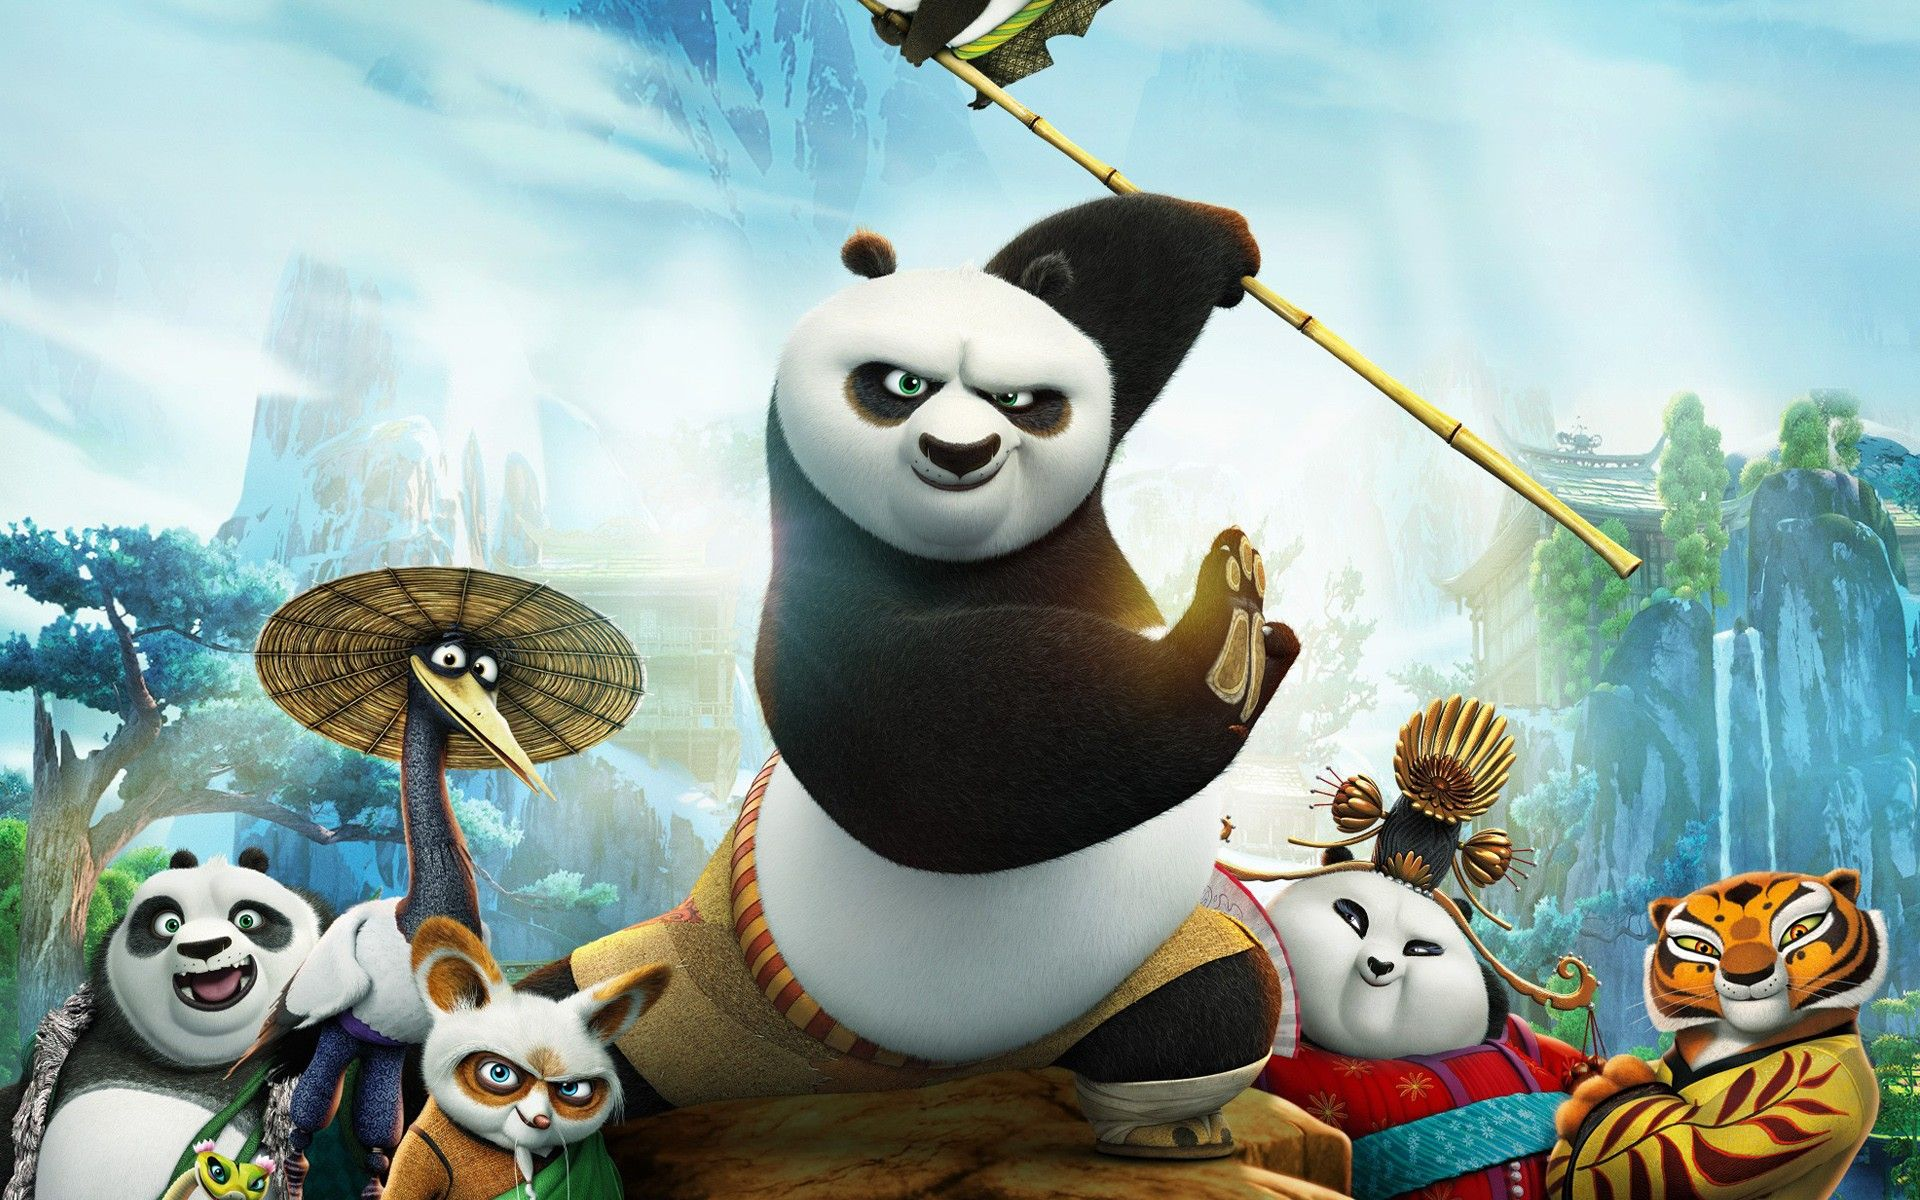 po and pandas from kung fu panda desktop wallpaper | hd wallpapers